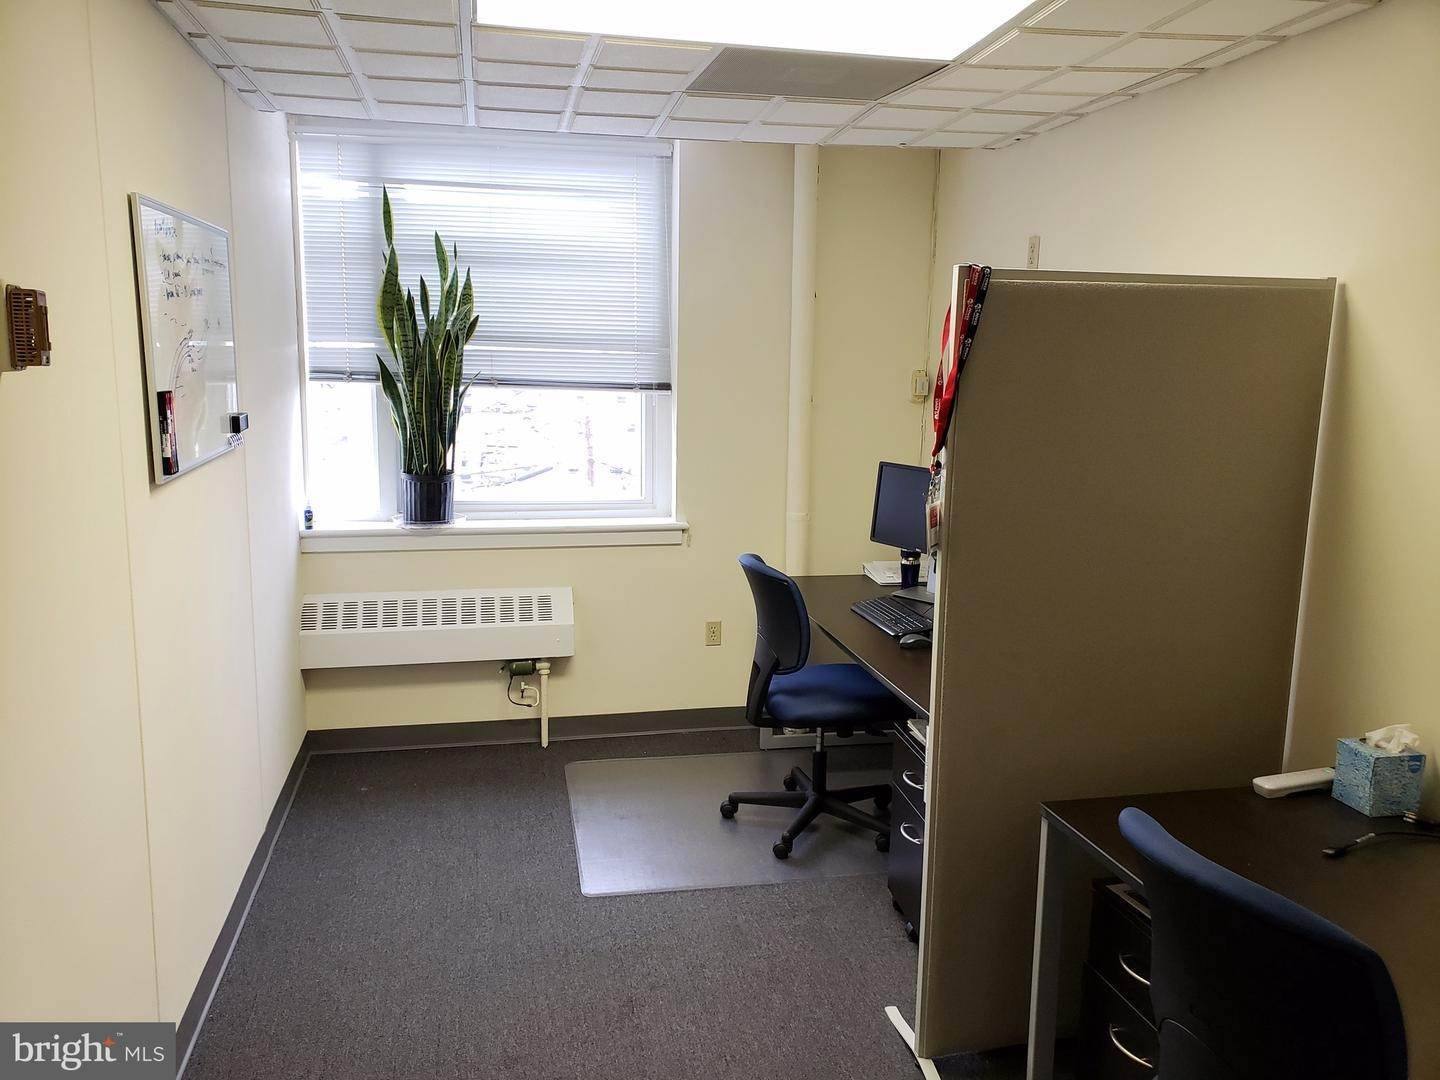 18. Offices for Sale at 1130-1136 HAMILTON Street Allentown, Pennsylvania 18101 United States